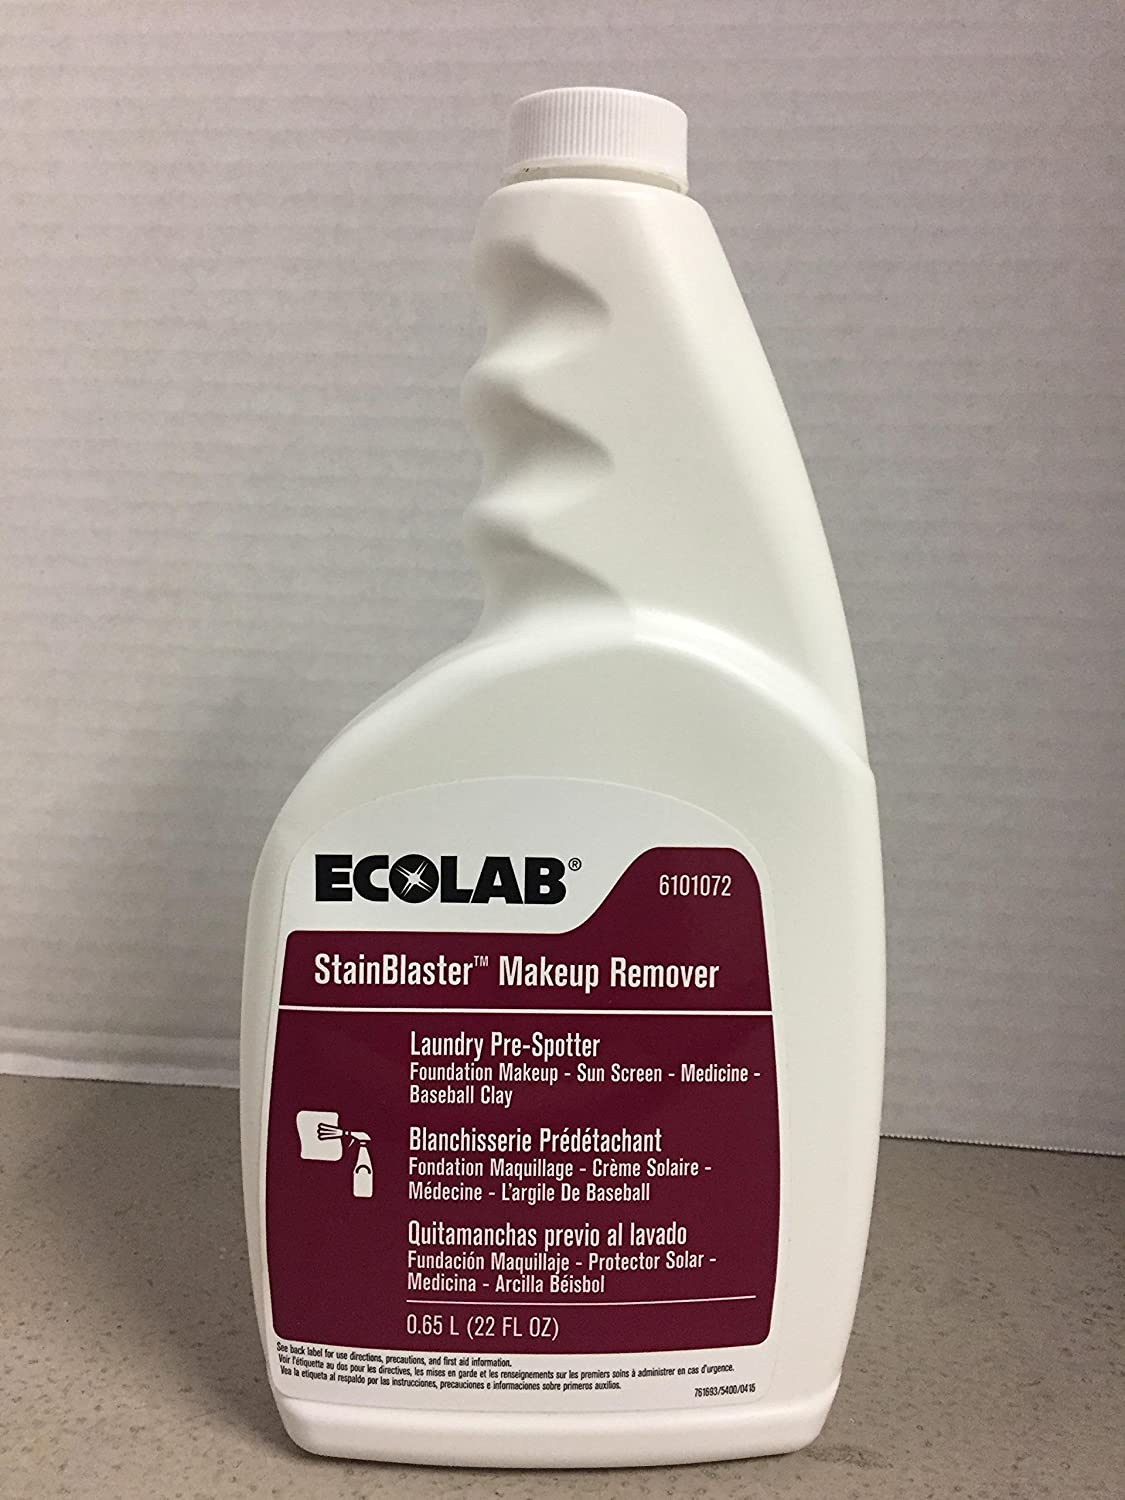 Amazon.com: Ecolab Stainblaster Makeup Remover Laundry Pre-spotter - 22 FL OZ: Industrial & Scientific